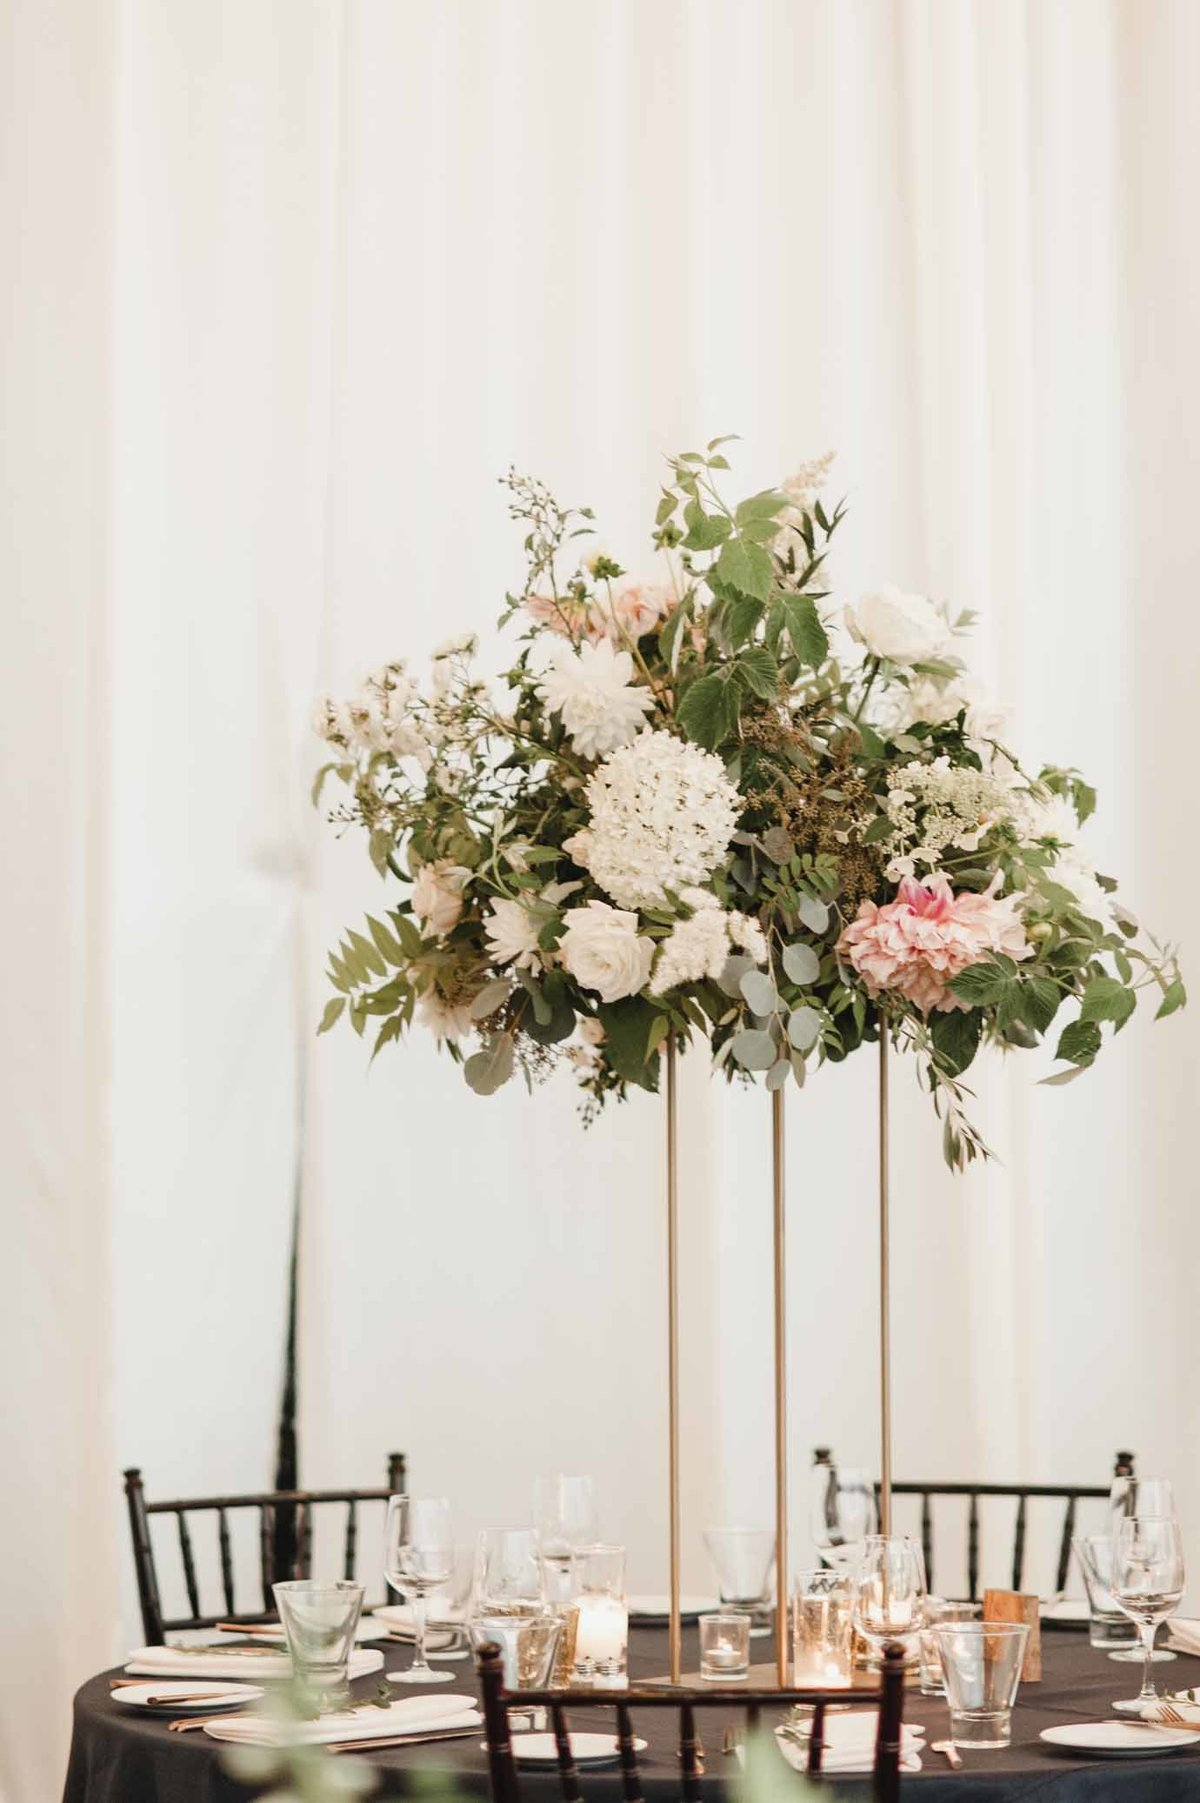 Romantic cream, green and blush elevated wedding floral arrangement created for our luxe Seattle wedding